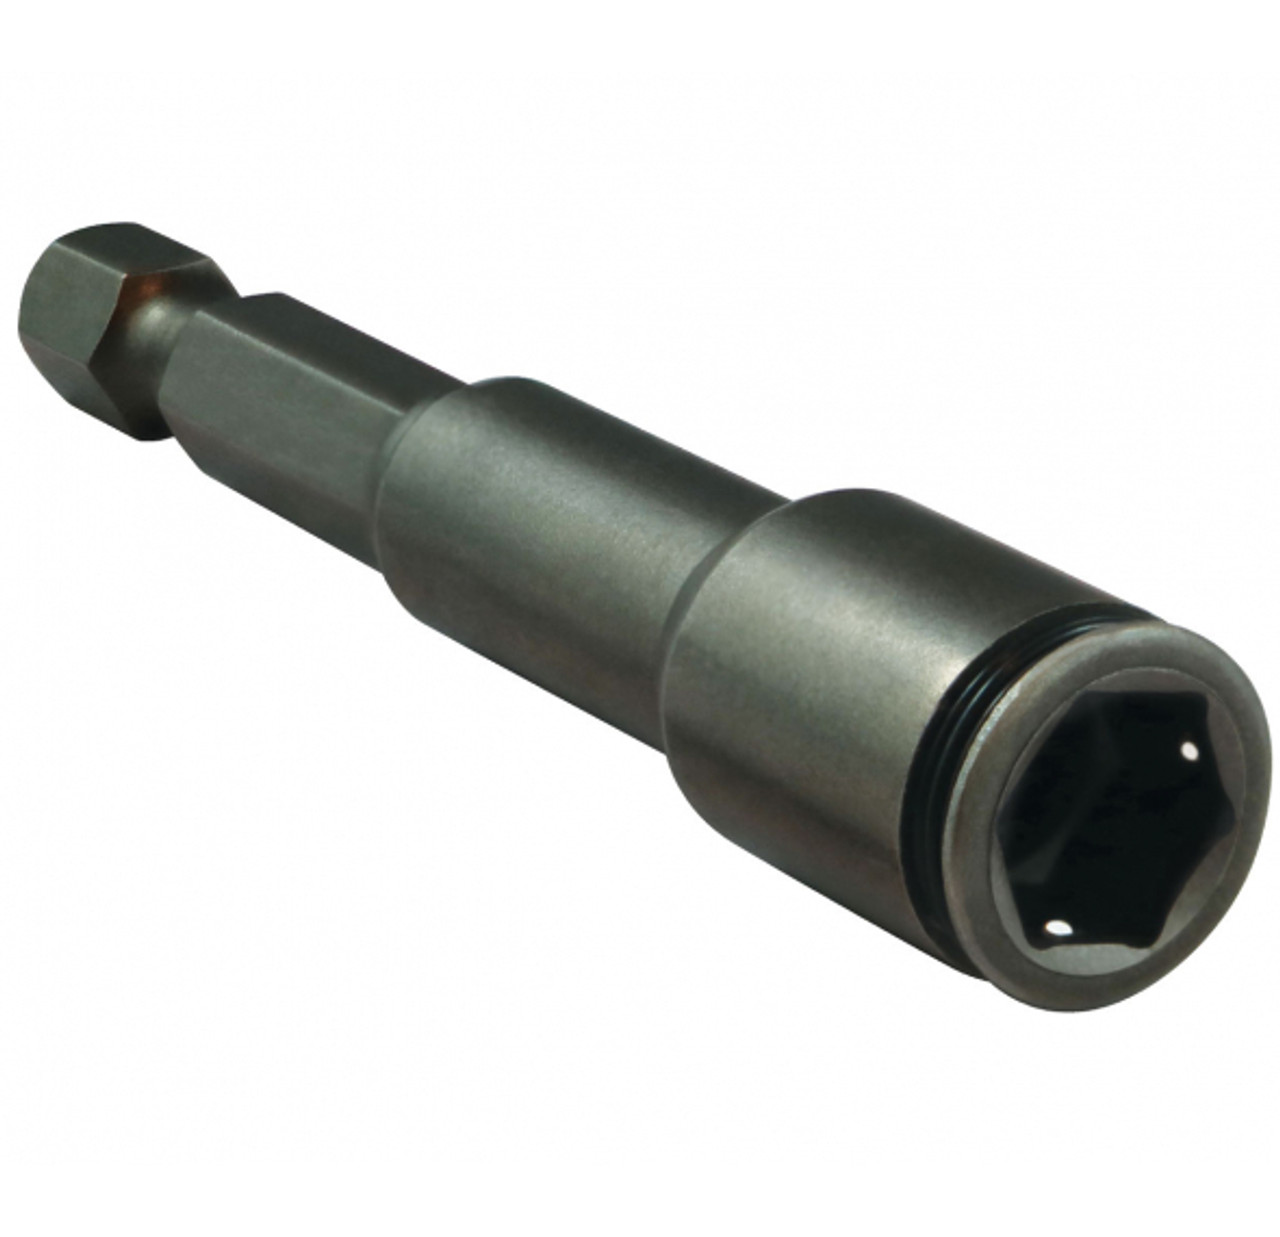 IMPACT NUT SETTER - PRESSURE FIT NON MAGNETIC